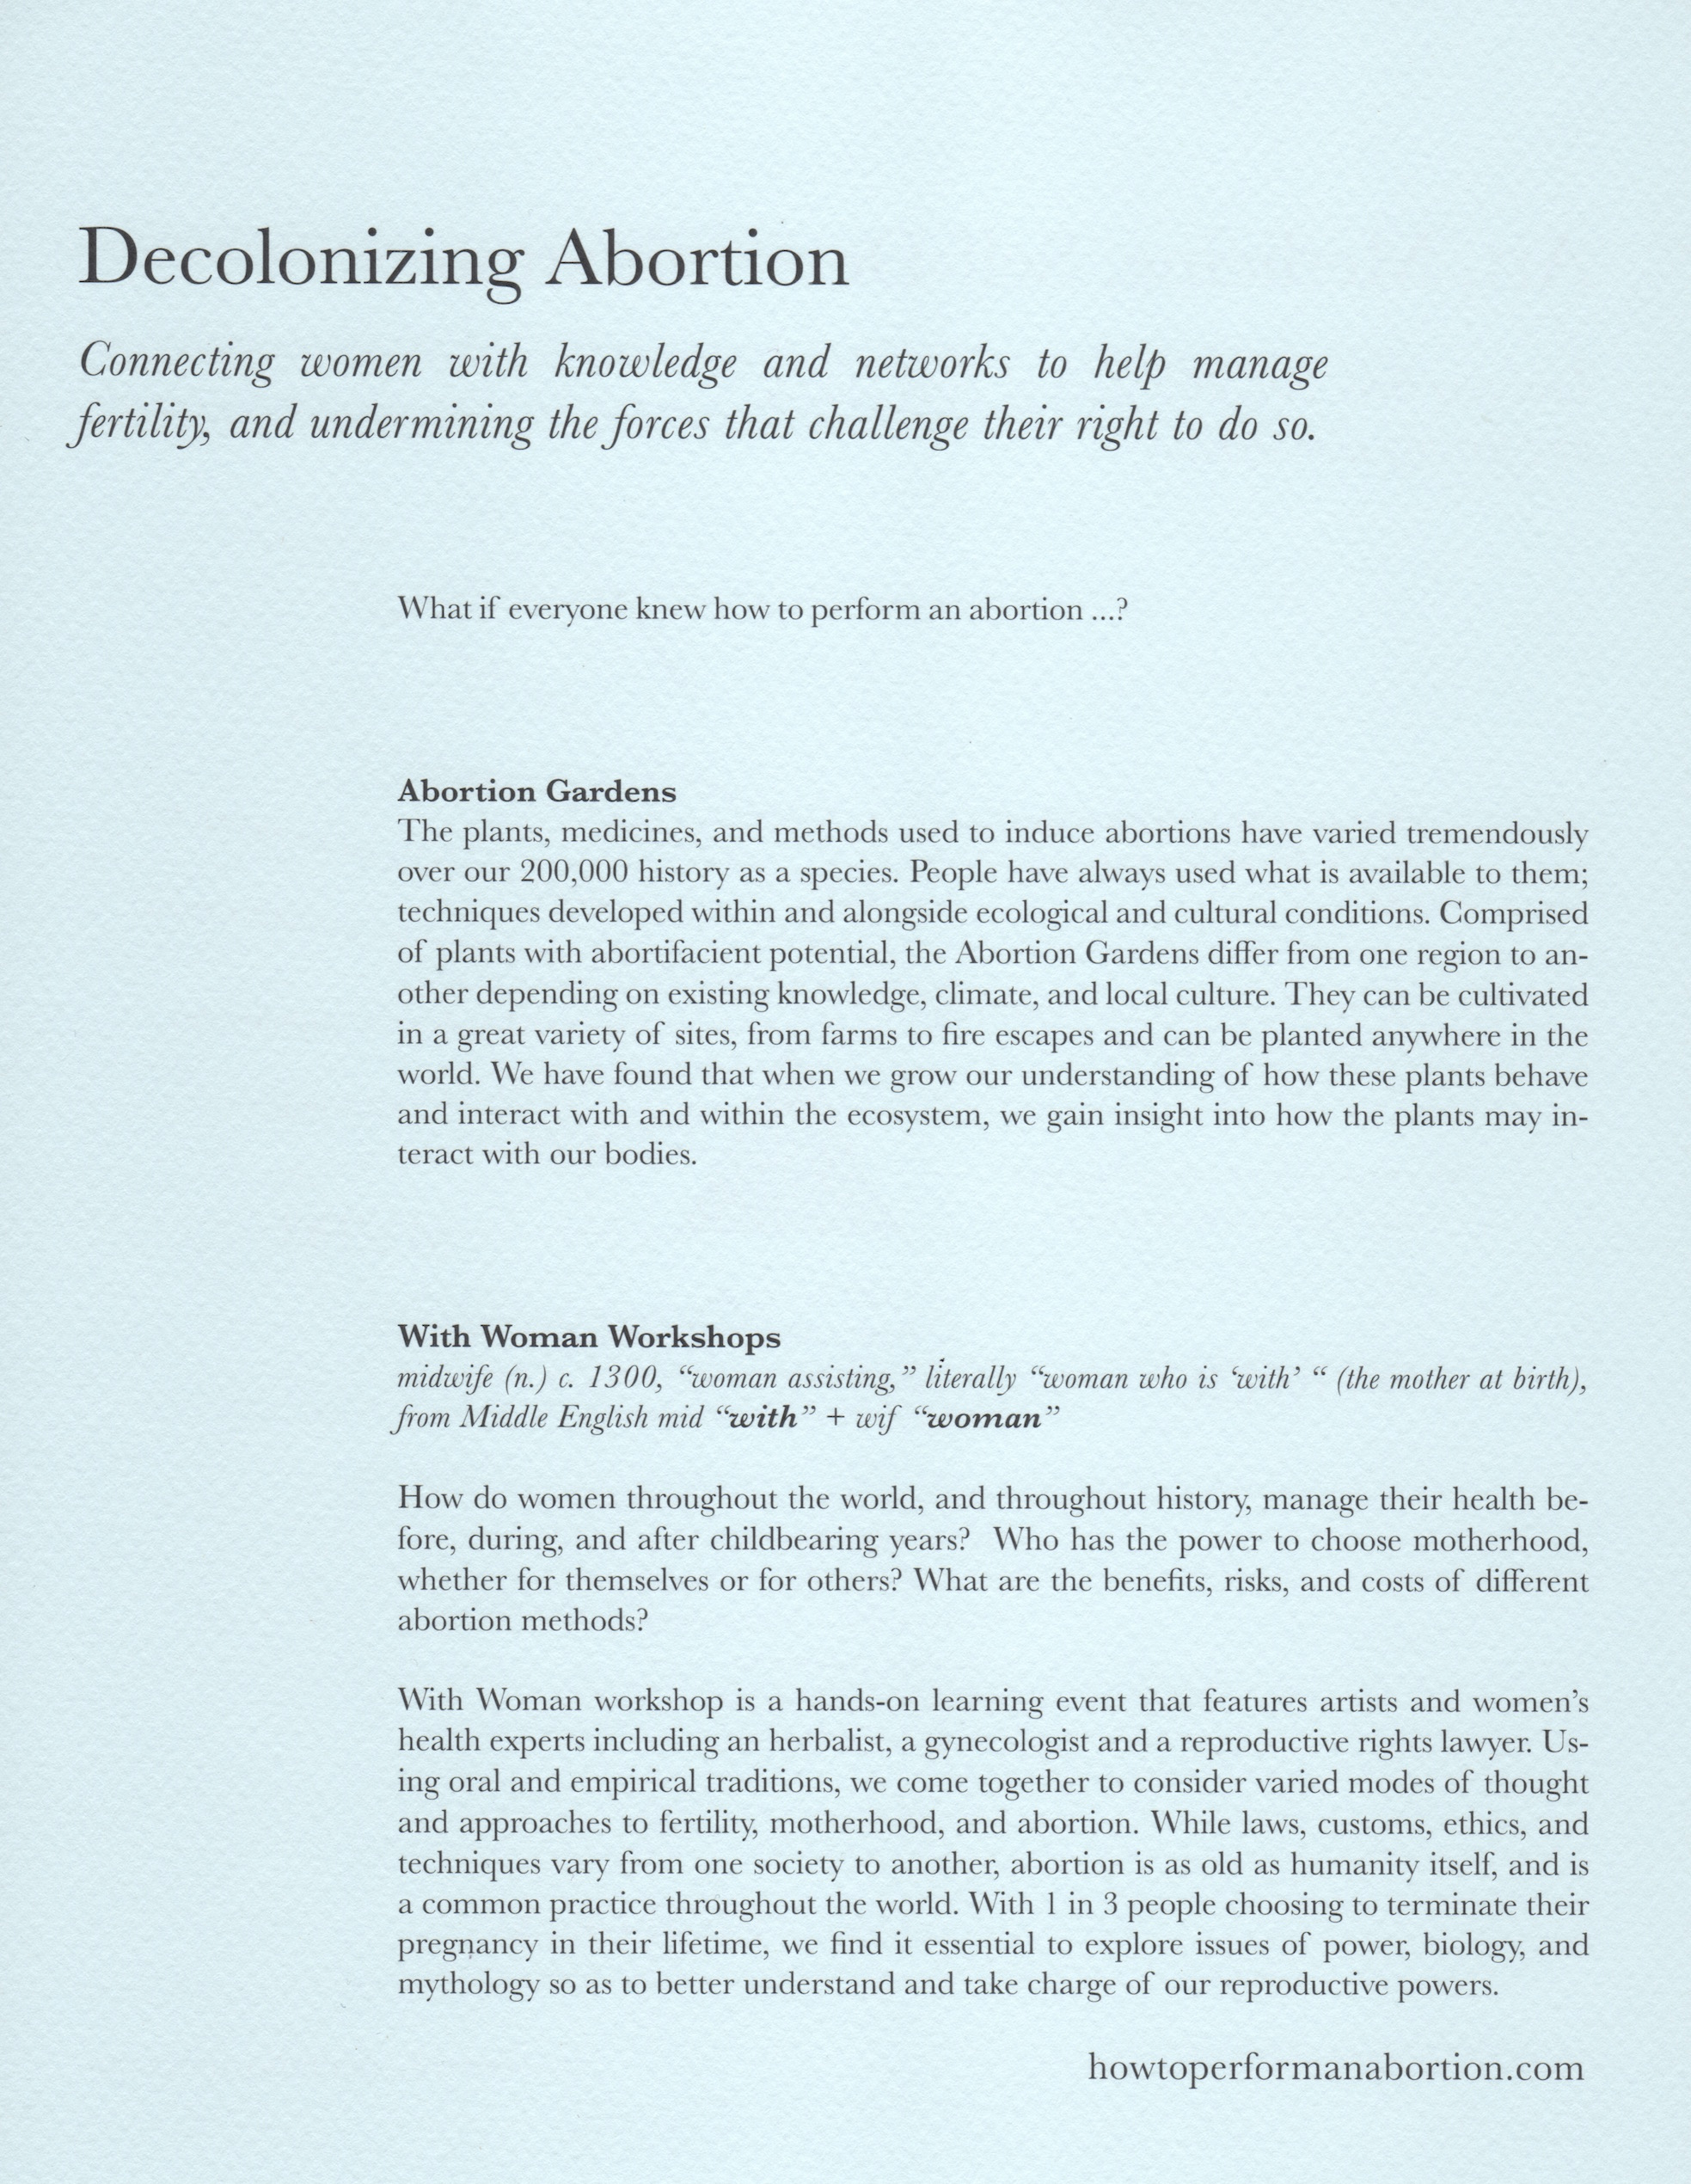 03.Decolonize Abortion side 1 handout in envelope WEB.jpeg